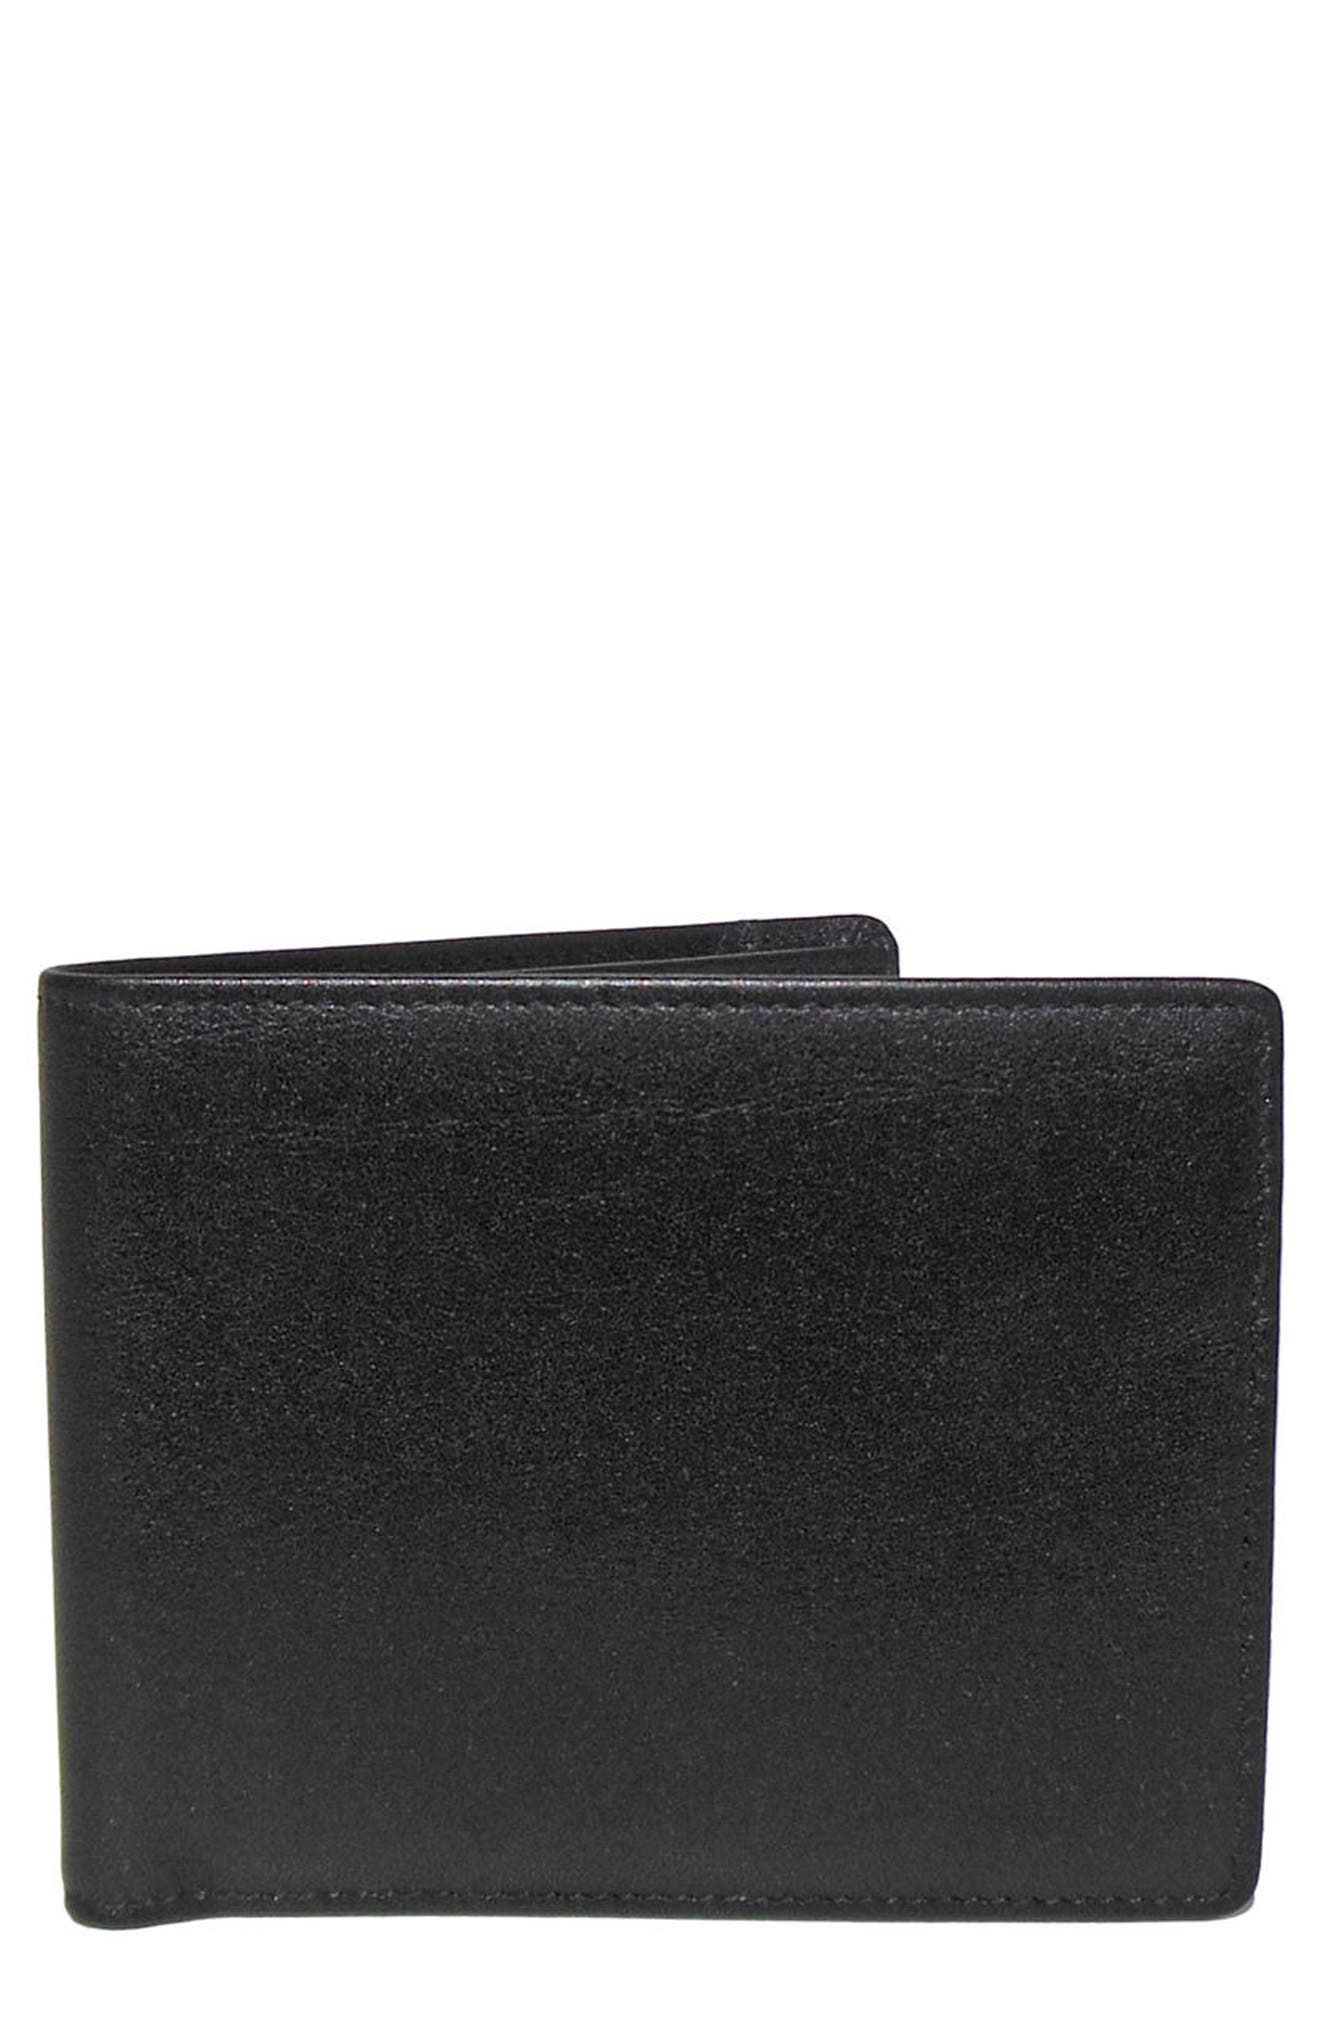 Grant Leather Wallet,                             Main thumbnail 1, color,                             001